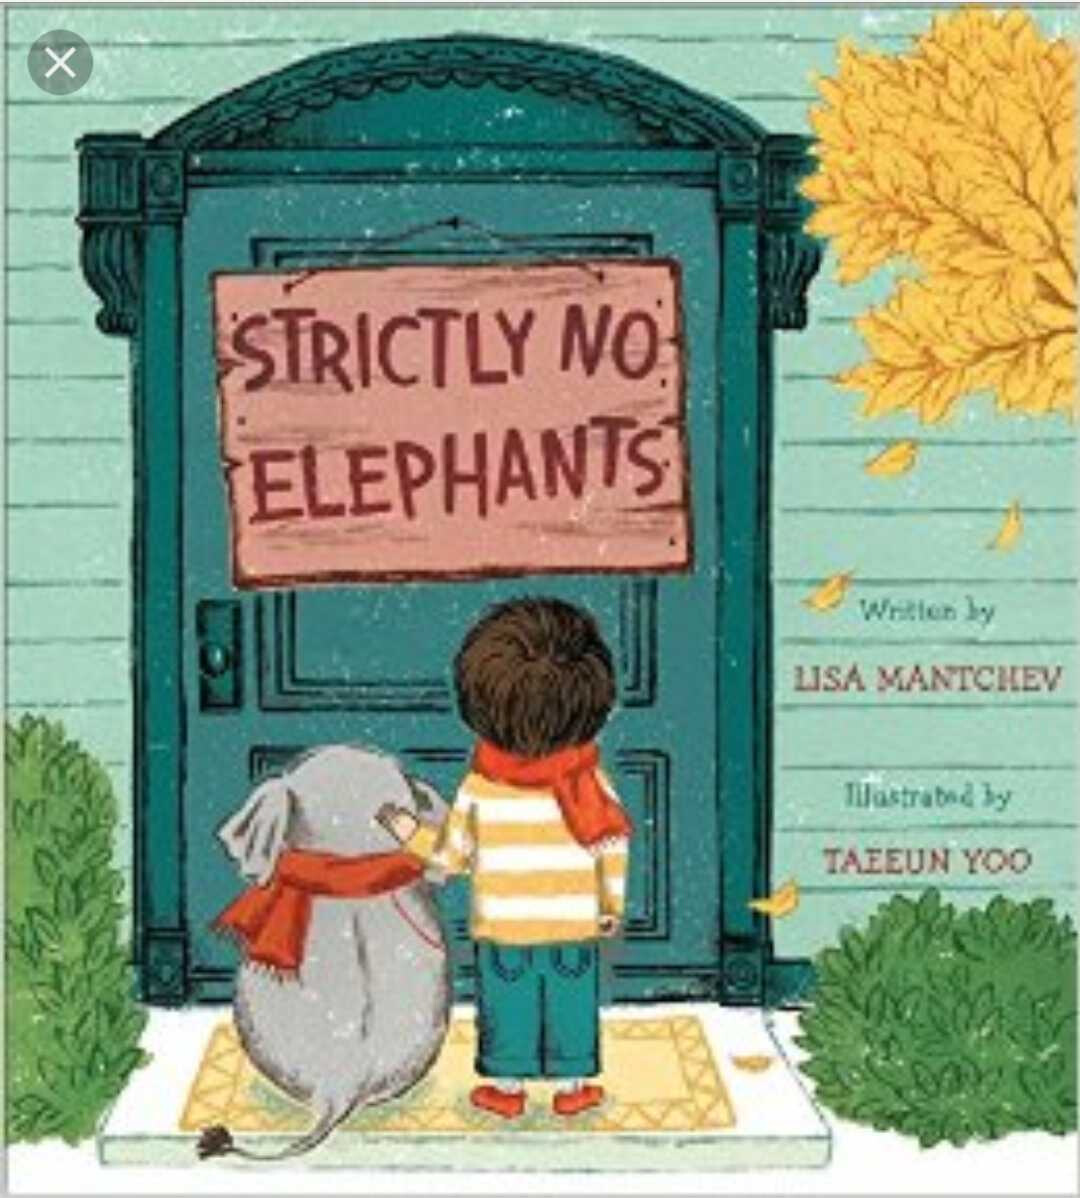 Strictly No Elephants - One of my all-time favorites! A sweet story about a boy and his unusual pet elephant. It teaches friendship values and inclusion.